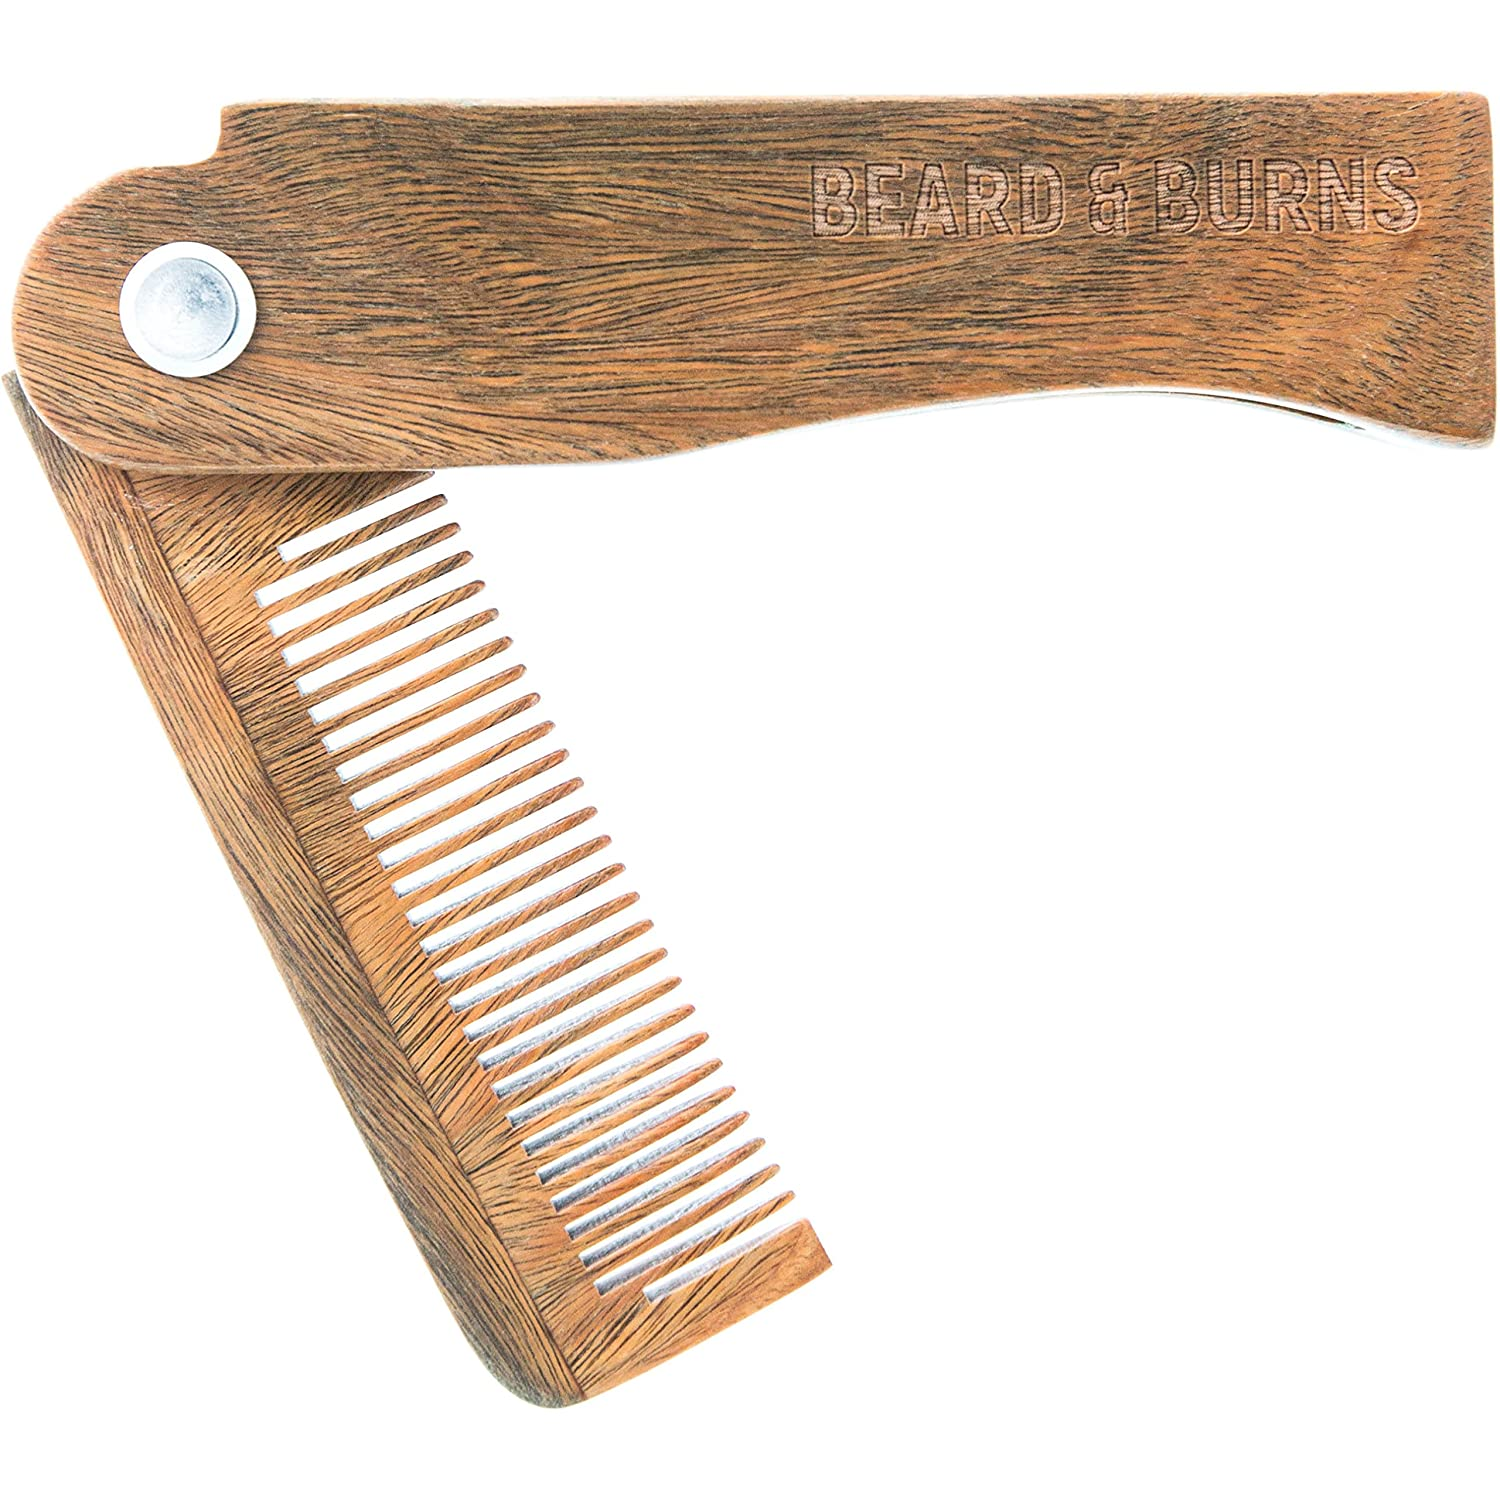 Wooden Folding Beard Comb by Beard and Burns – Portable Beard Trimming  Guide Comb –